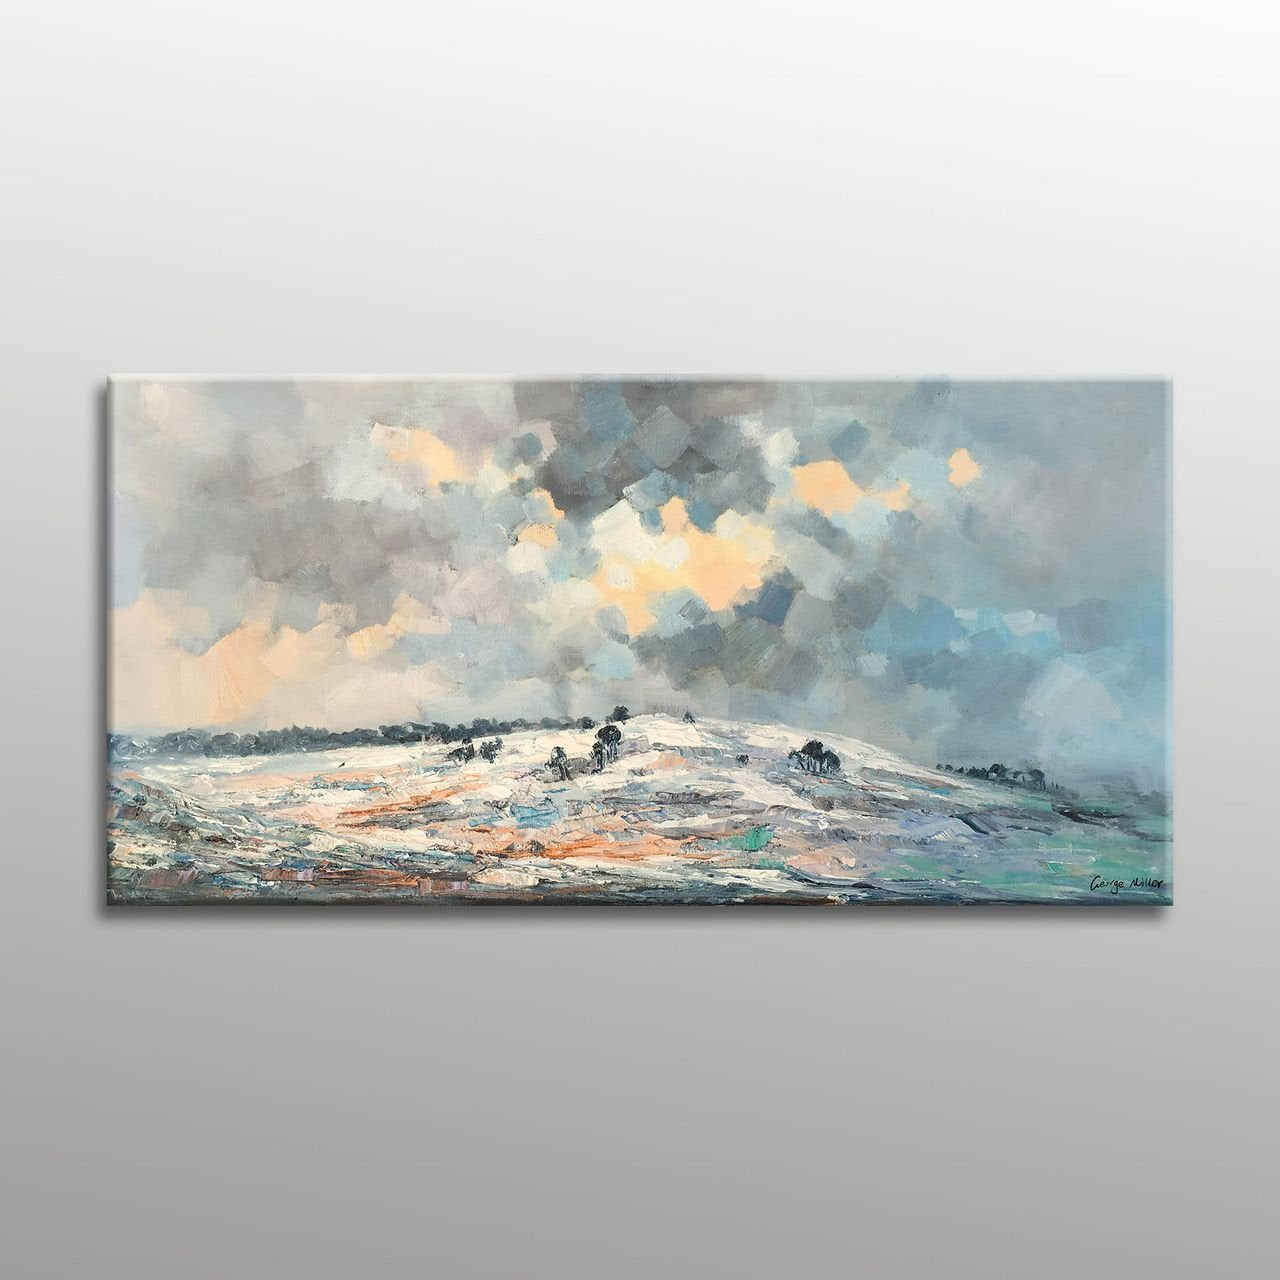 Large Oil Painting Canvas Painting Bathroom Wall Decor Abstract Oil Pa Georgemillerart